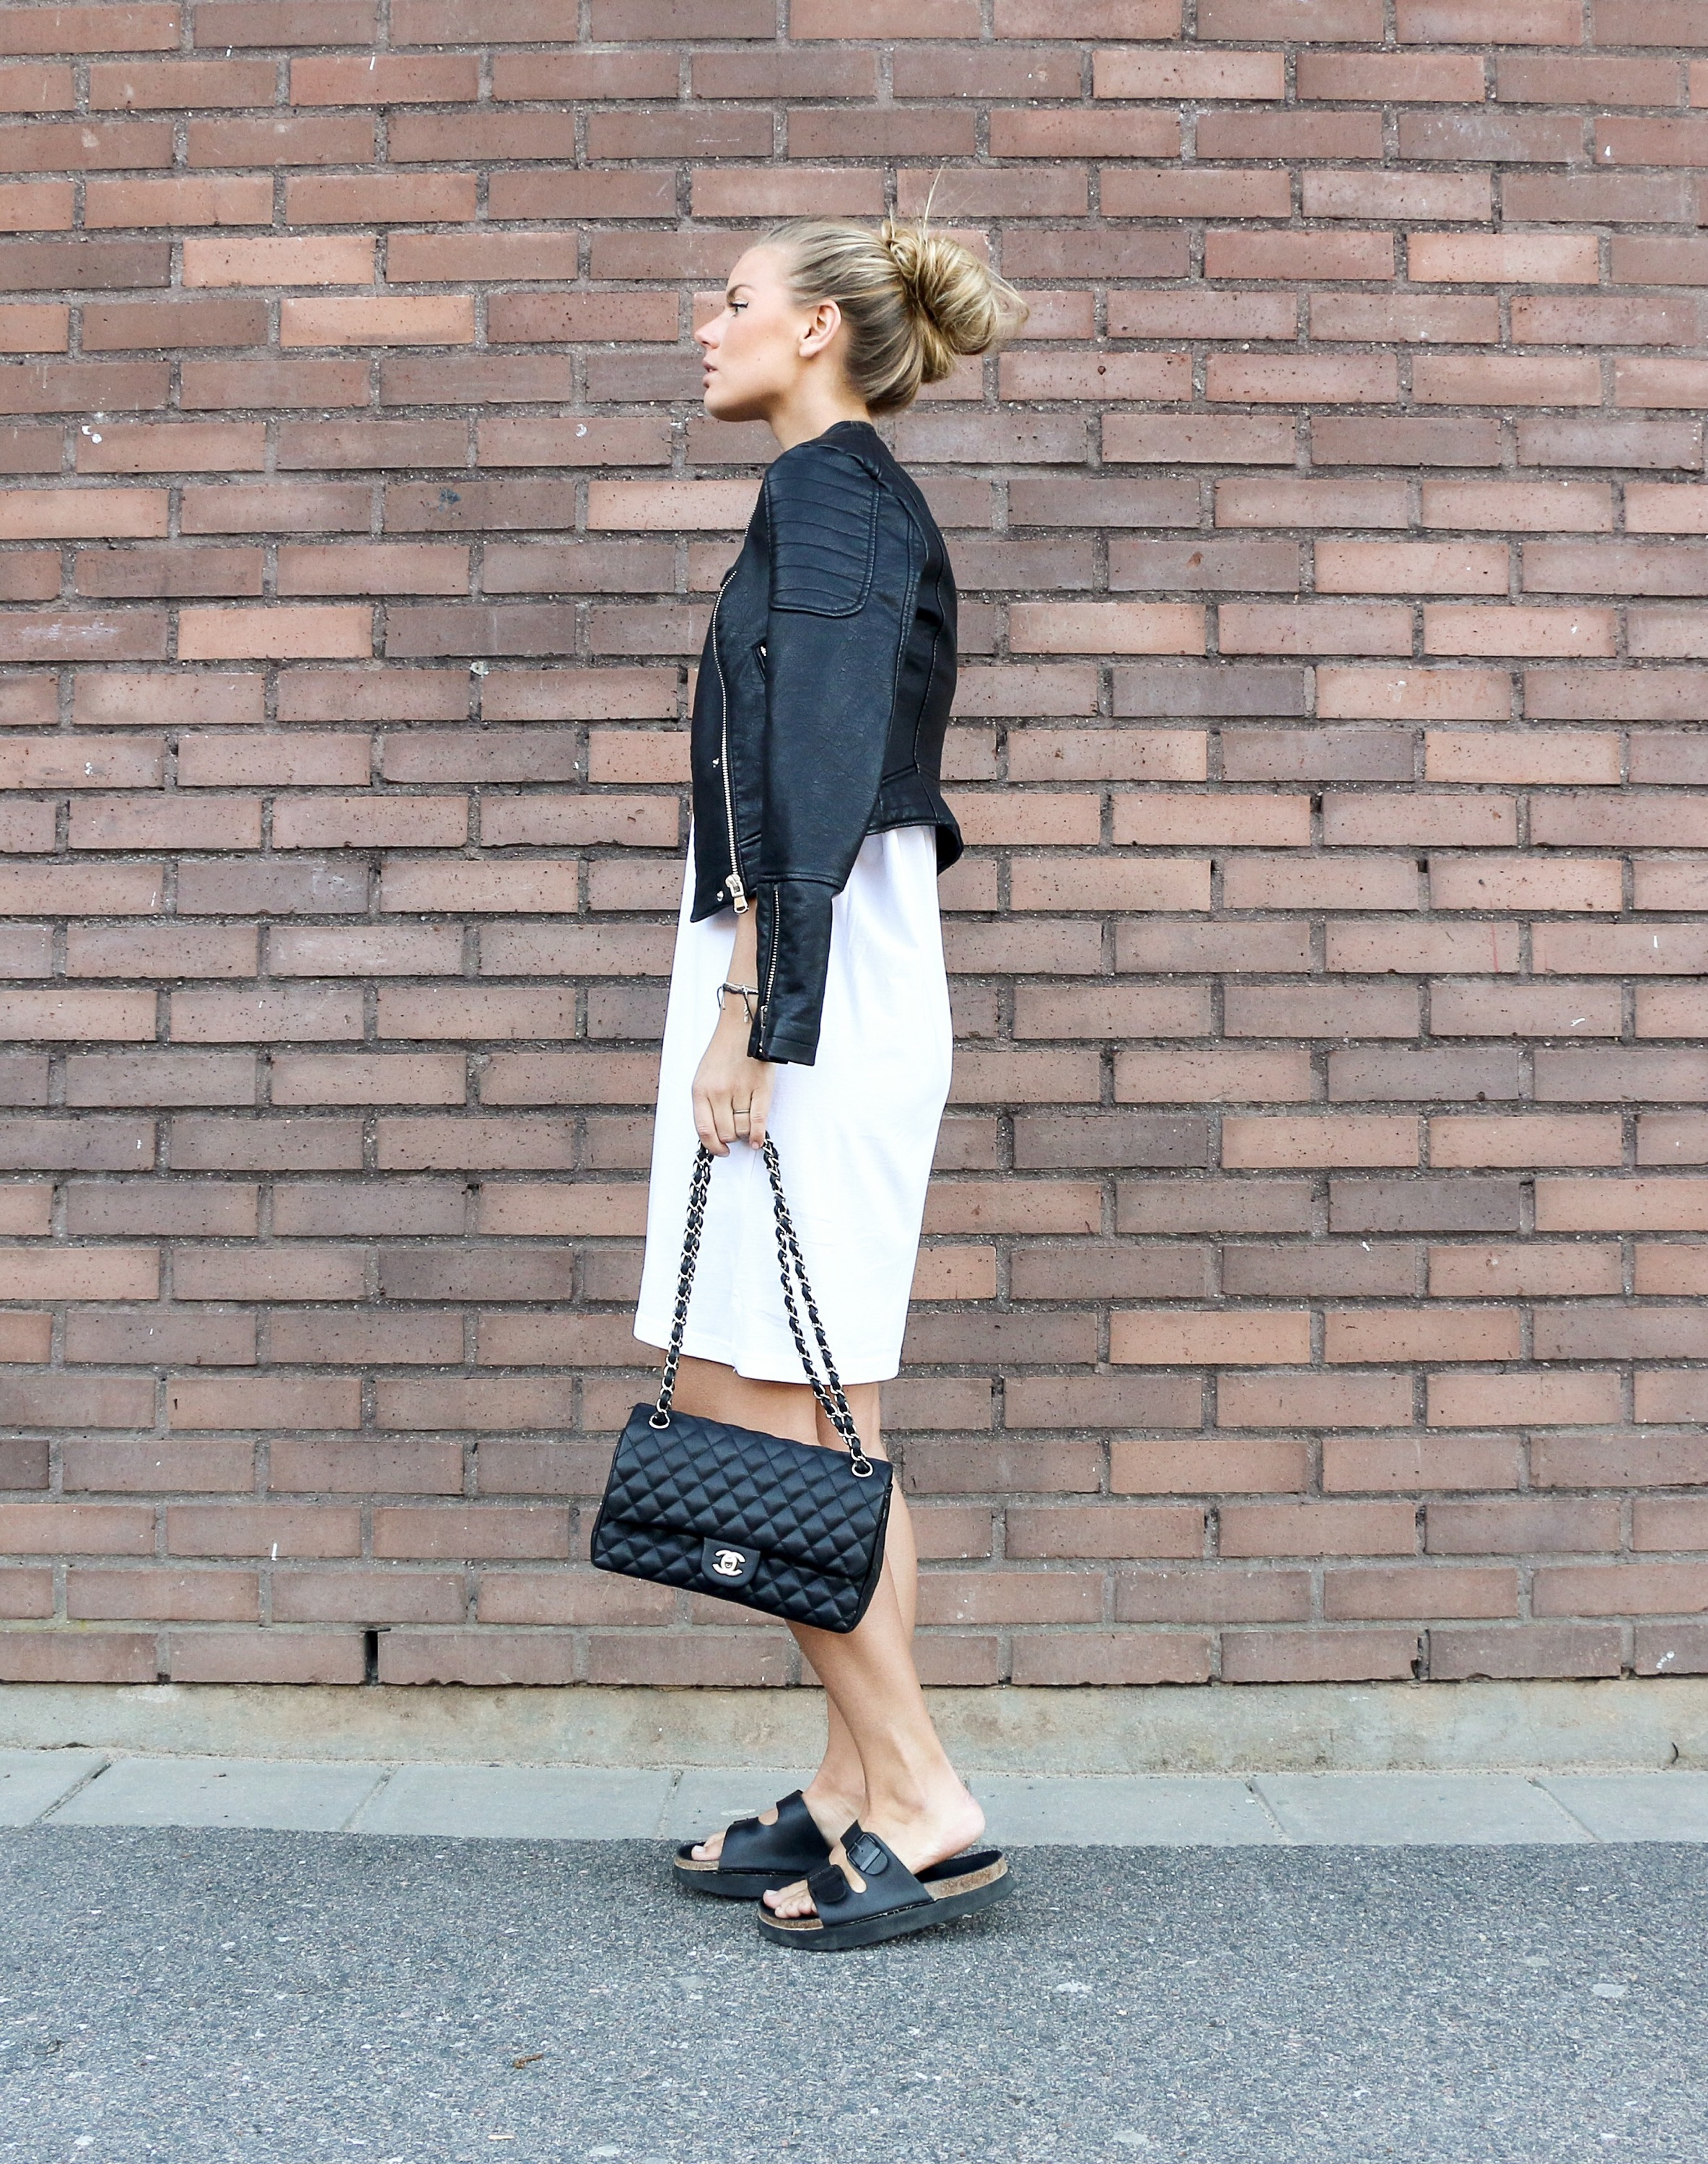 Frida Grahn is wearing a white T-shirt dress, black leather jacket, sandals and bag Sandals: Din Sko, Bag: Chanel, Leather Jacket: Chiquelle, T-shirt dress: H&M